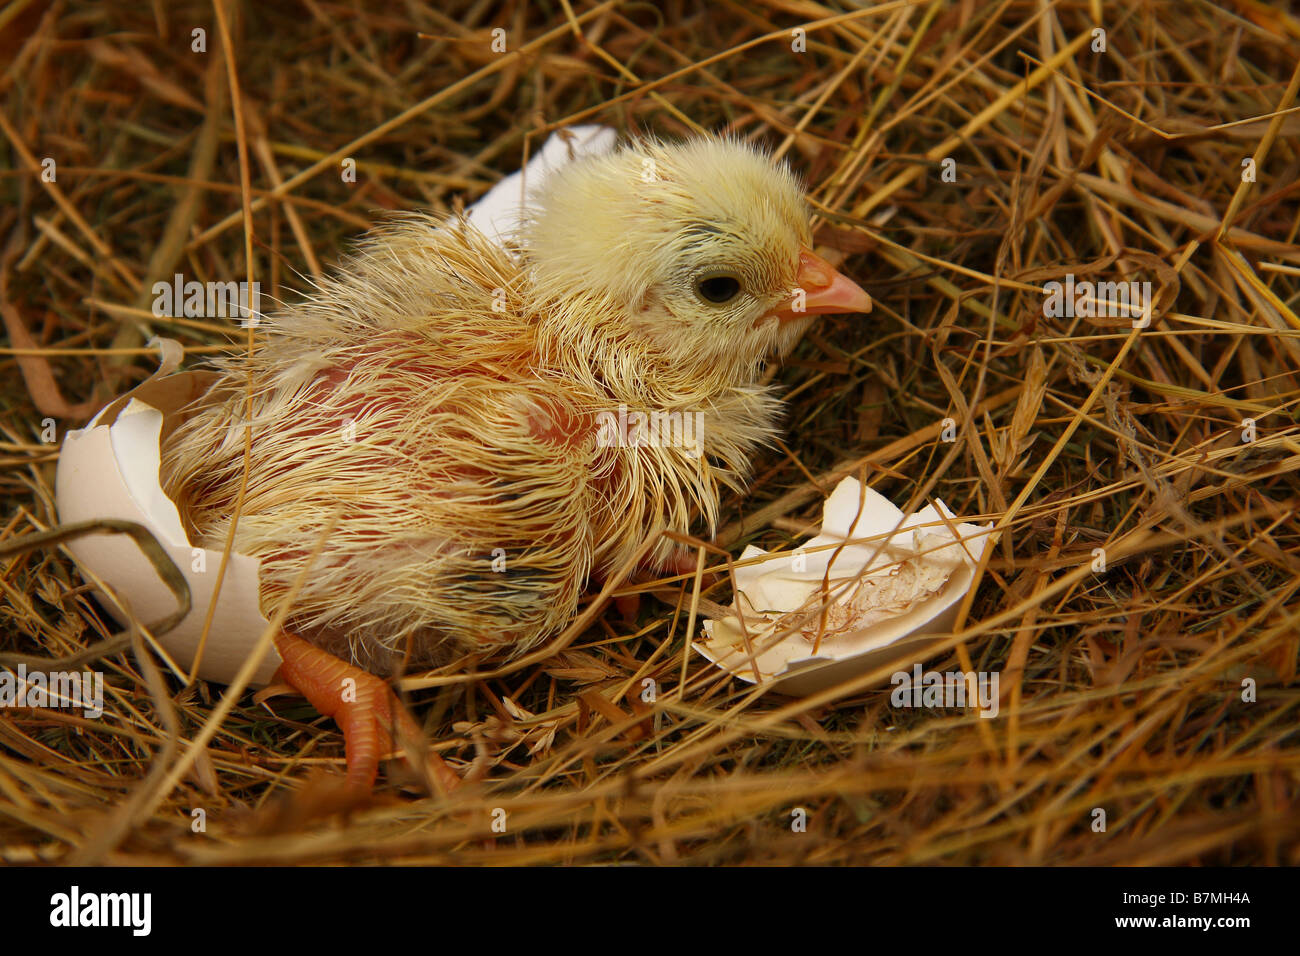 A recently hatched chick sitting on a bed of hay with the remains of the egg shell beside it. - Stock Image